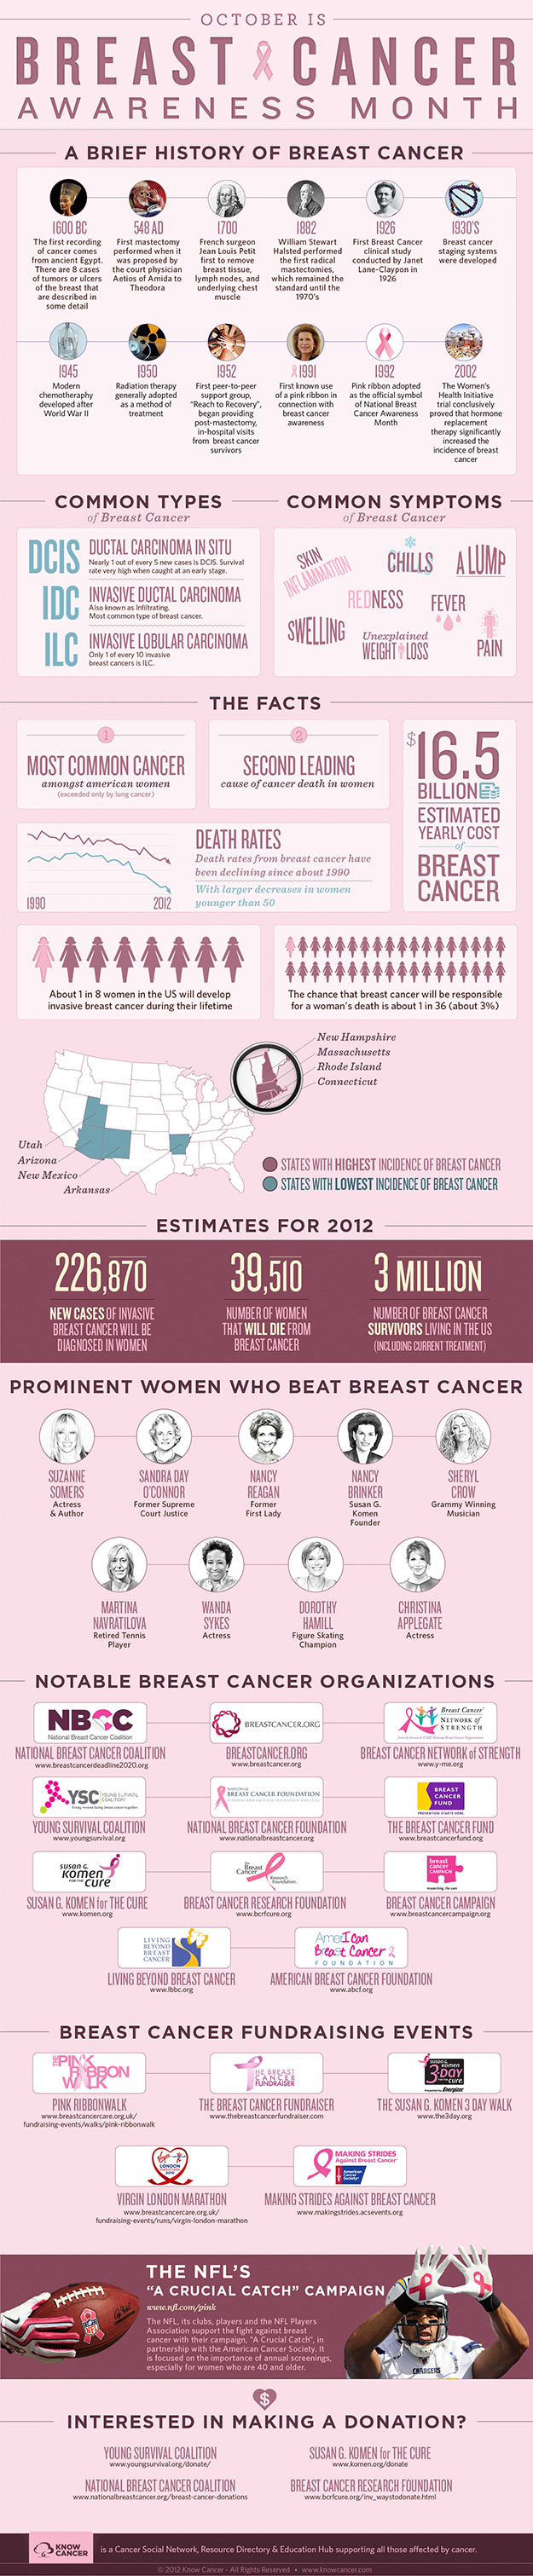 Breast Cancer: The History, States with the Highest Incidence and Cool Women Who Beat It (INFOGRAPHIC)